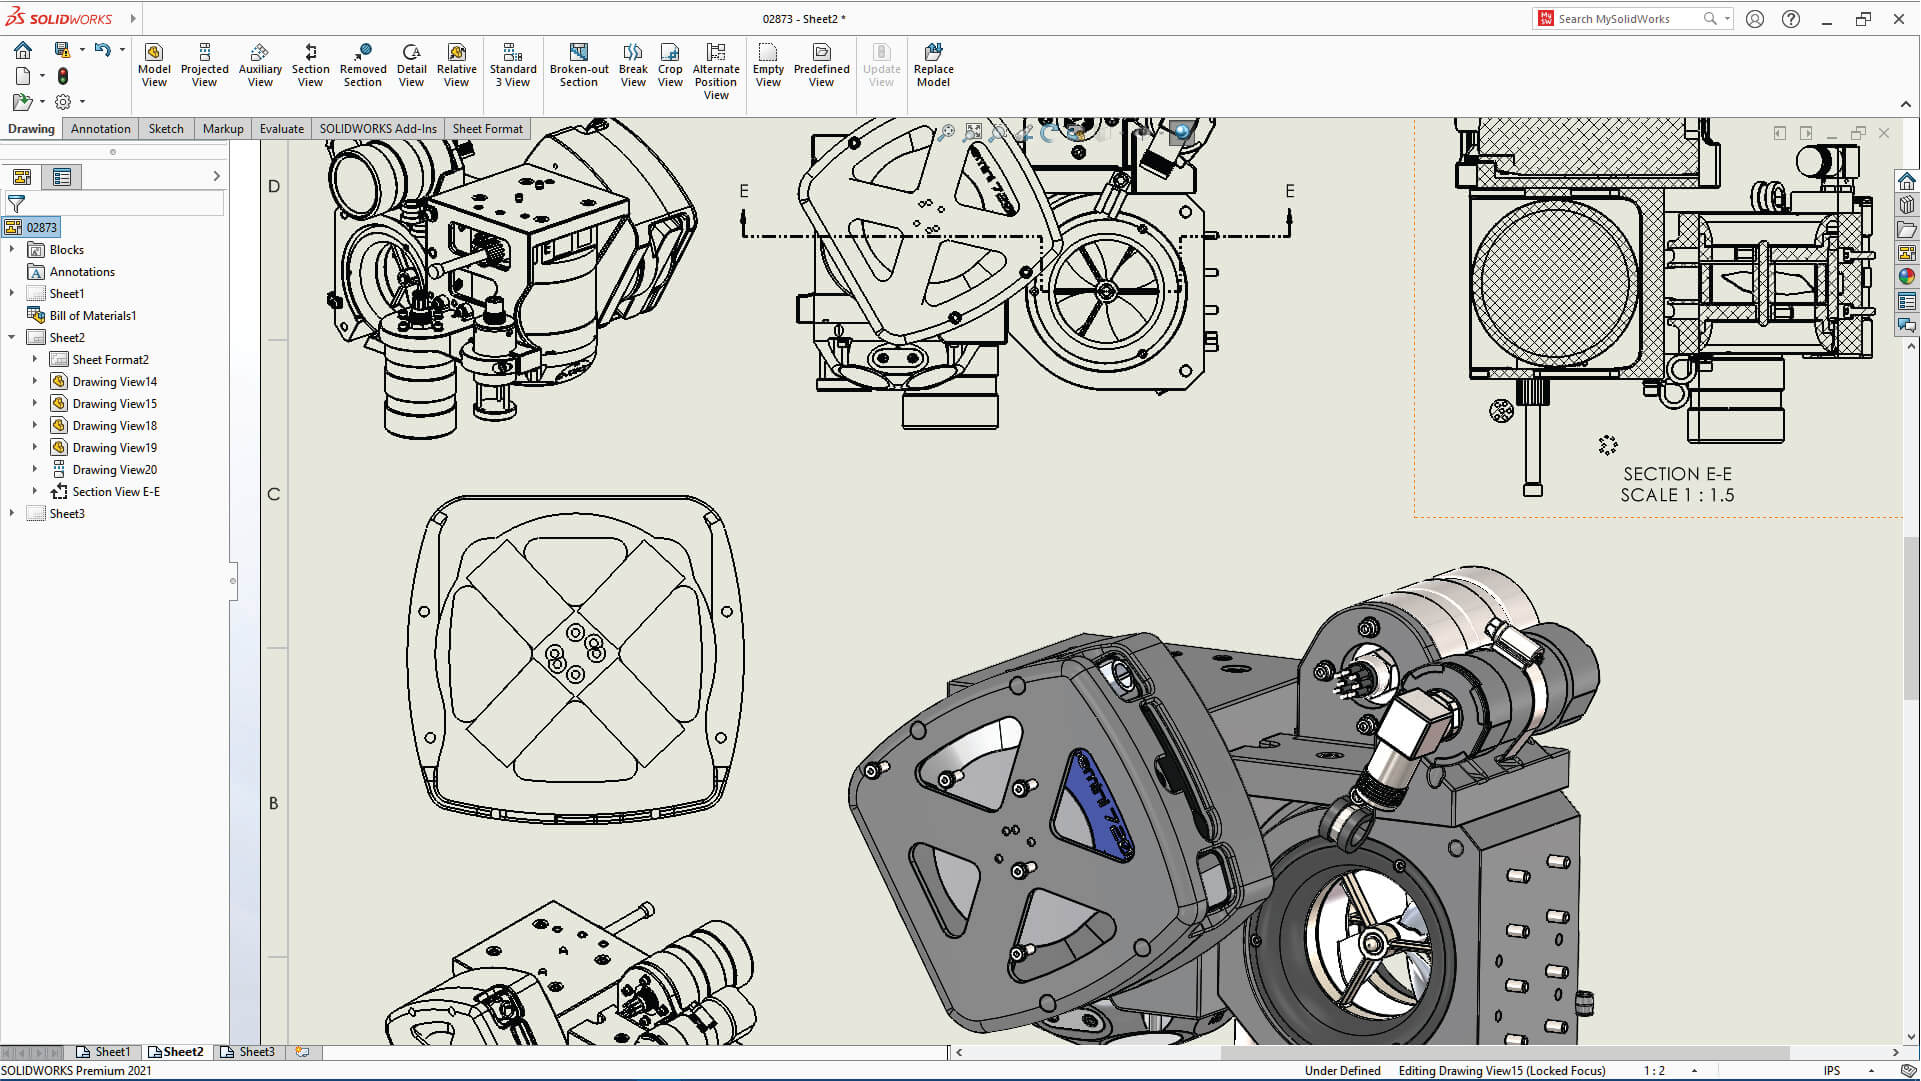 SOLIDWORKS Product data